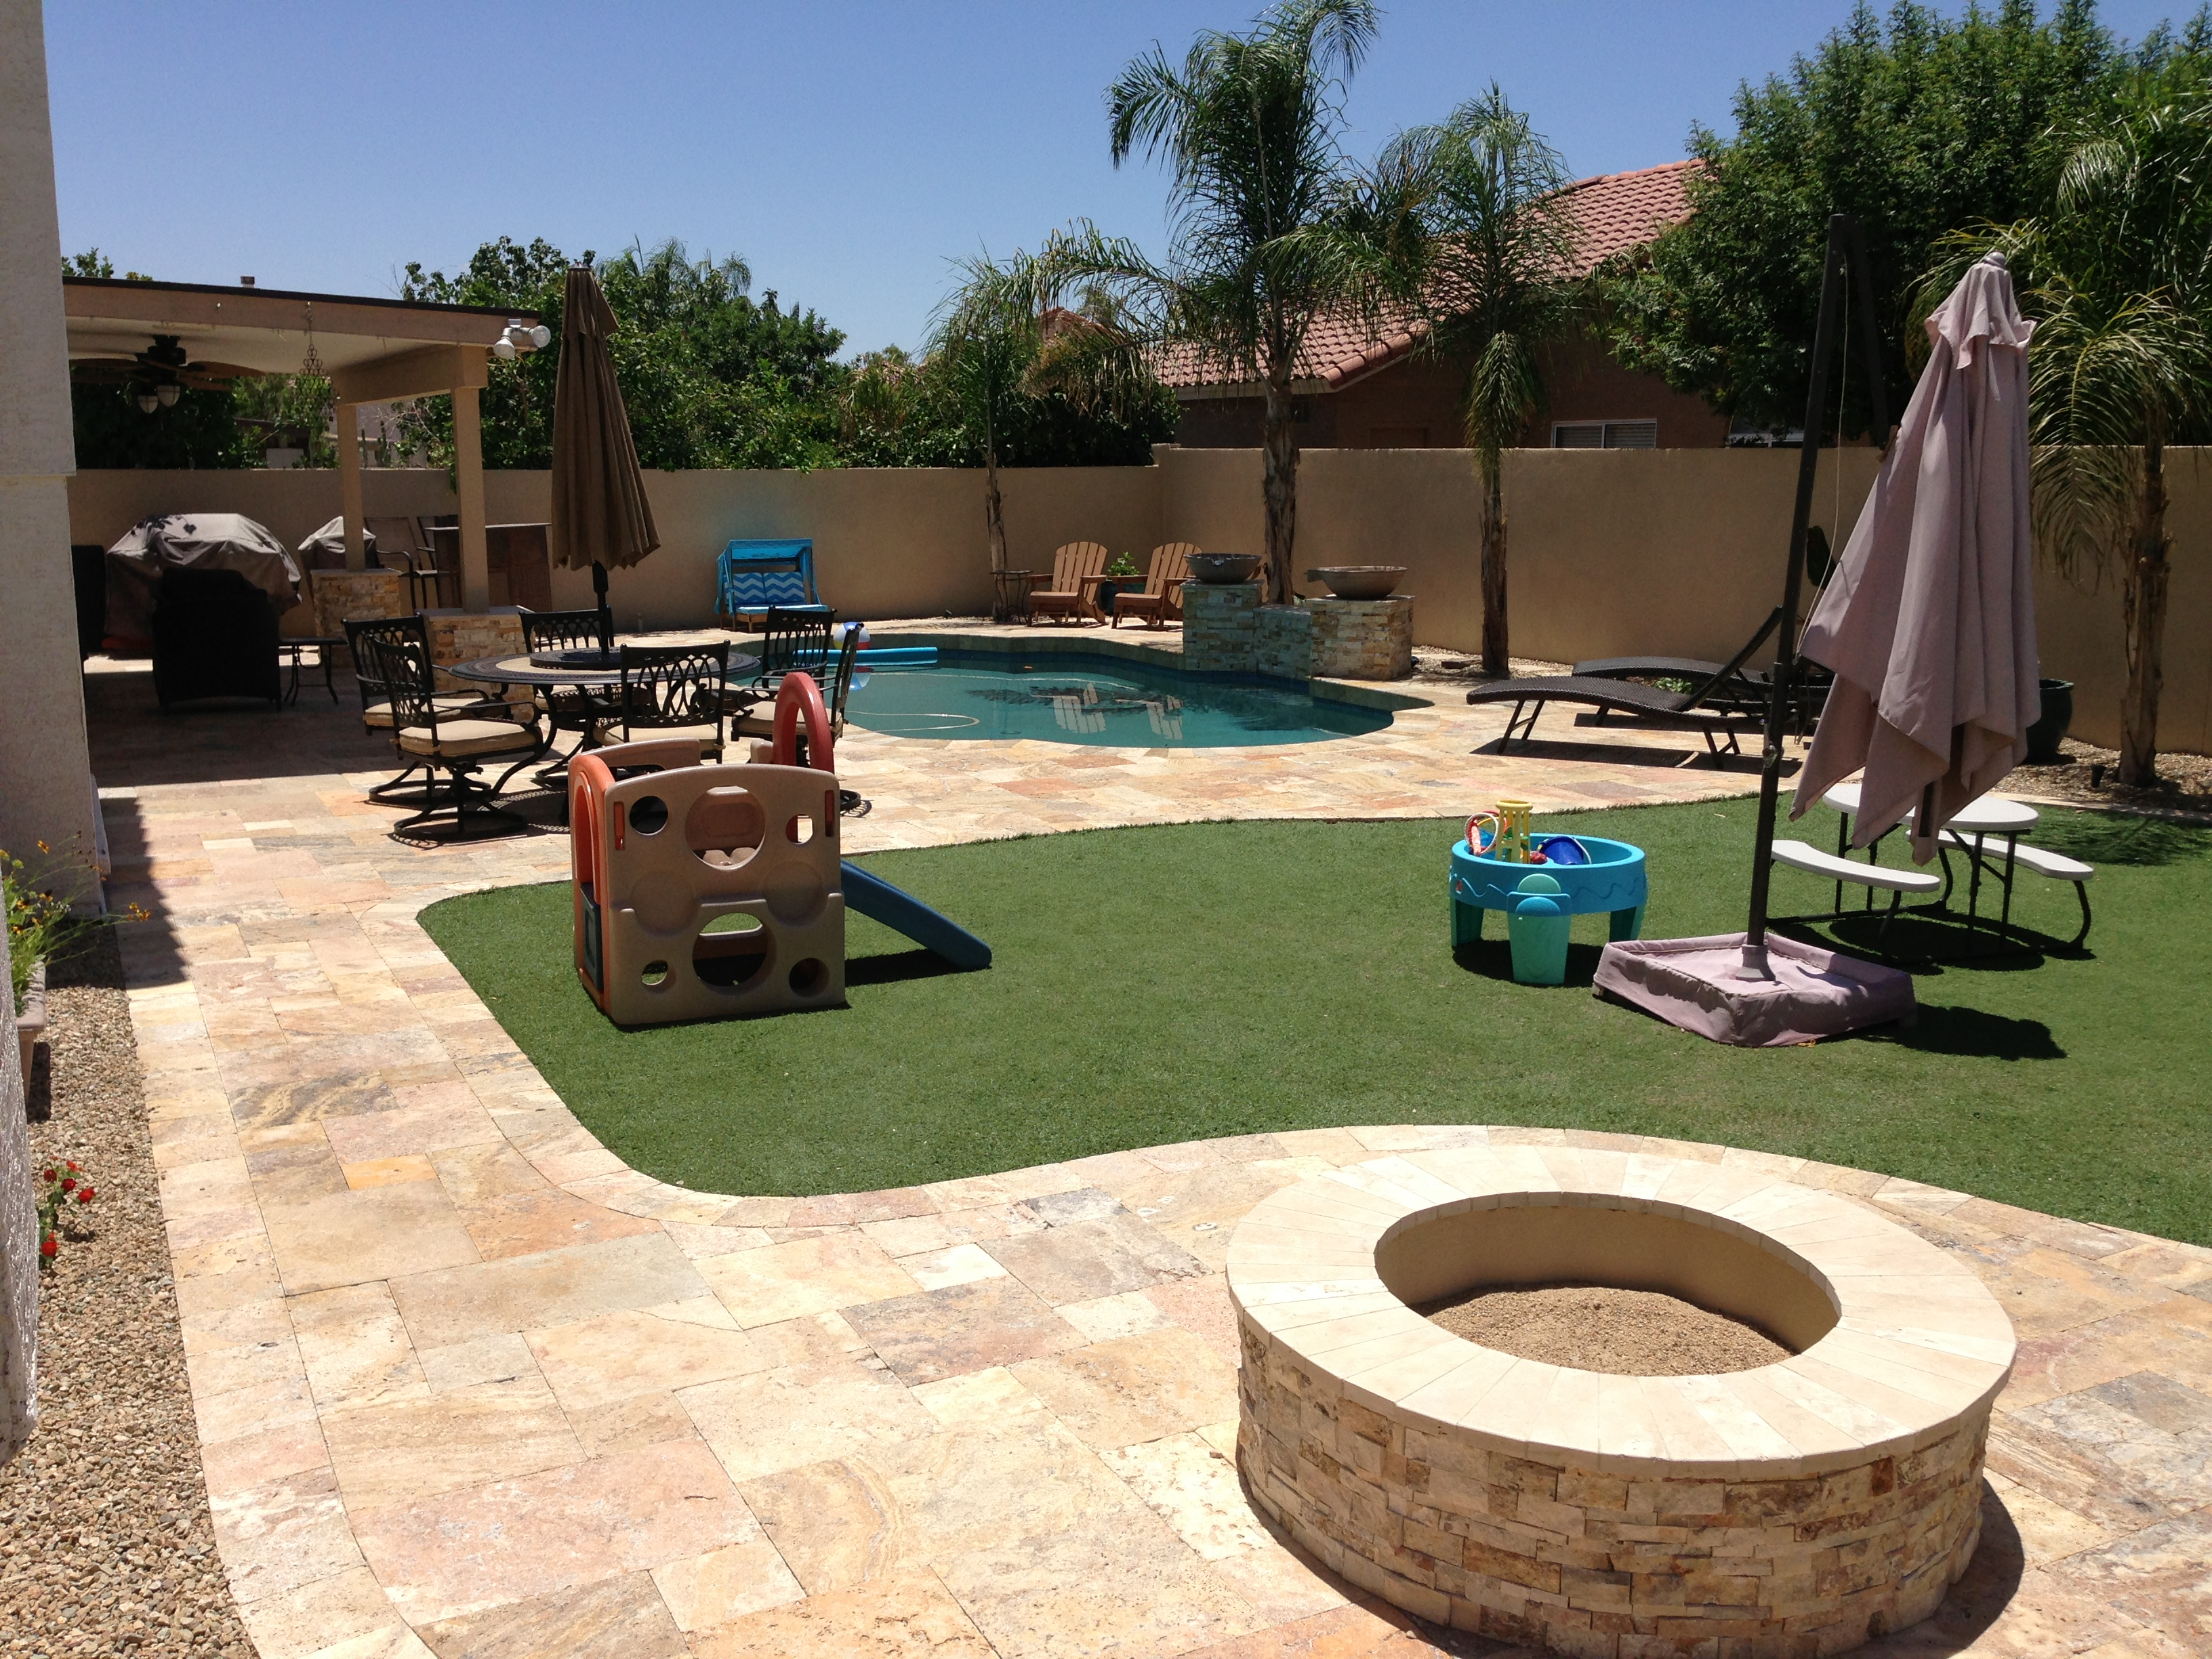 Phoenix Landscape Renovation Creates Family Fun!